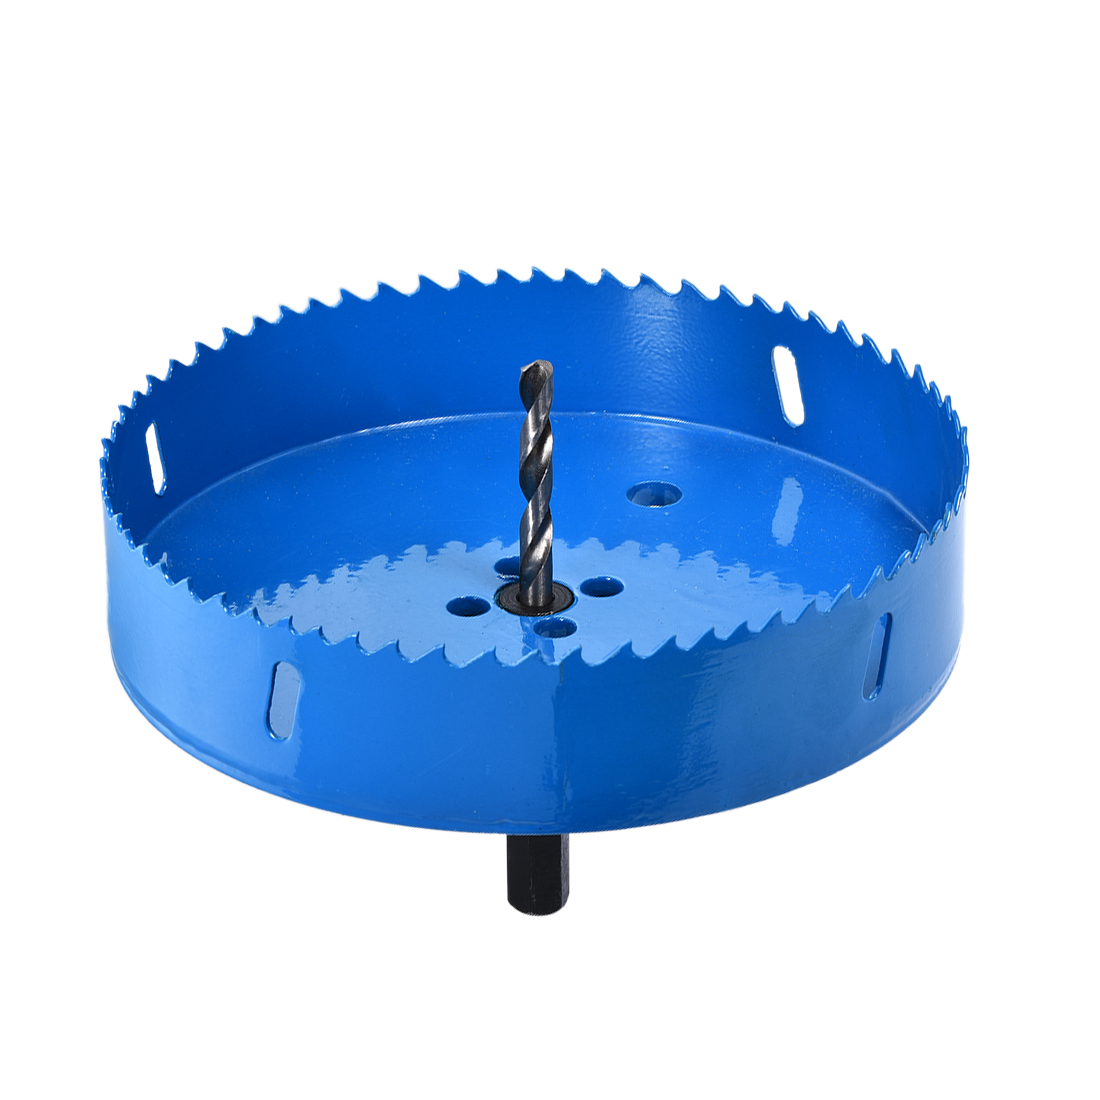 6 5/16 Inch Bi-Metal Hole Saw for Cornhole Boards Corn Hole Drilling Cutter Blue